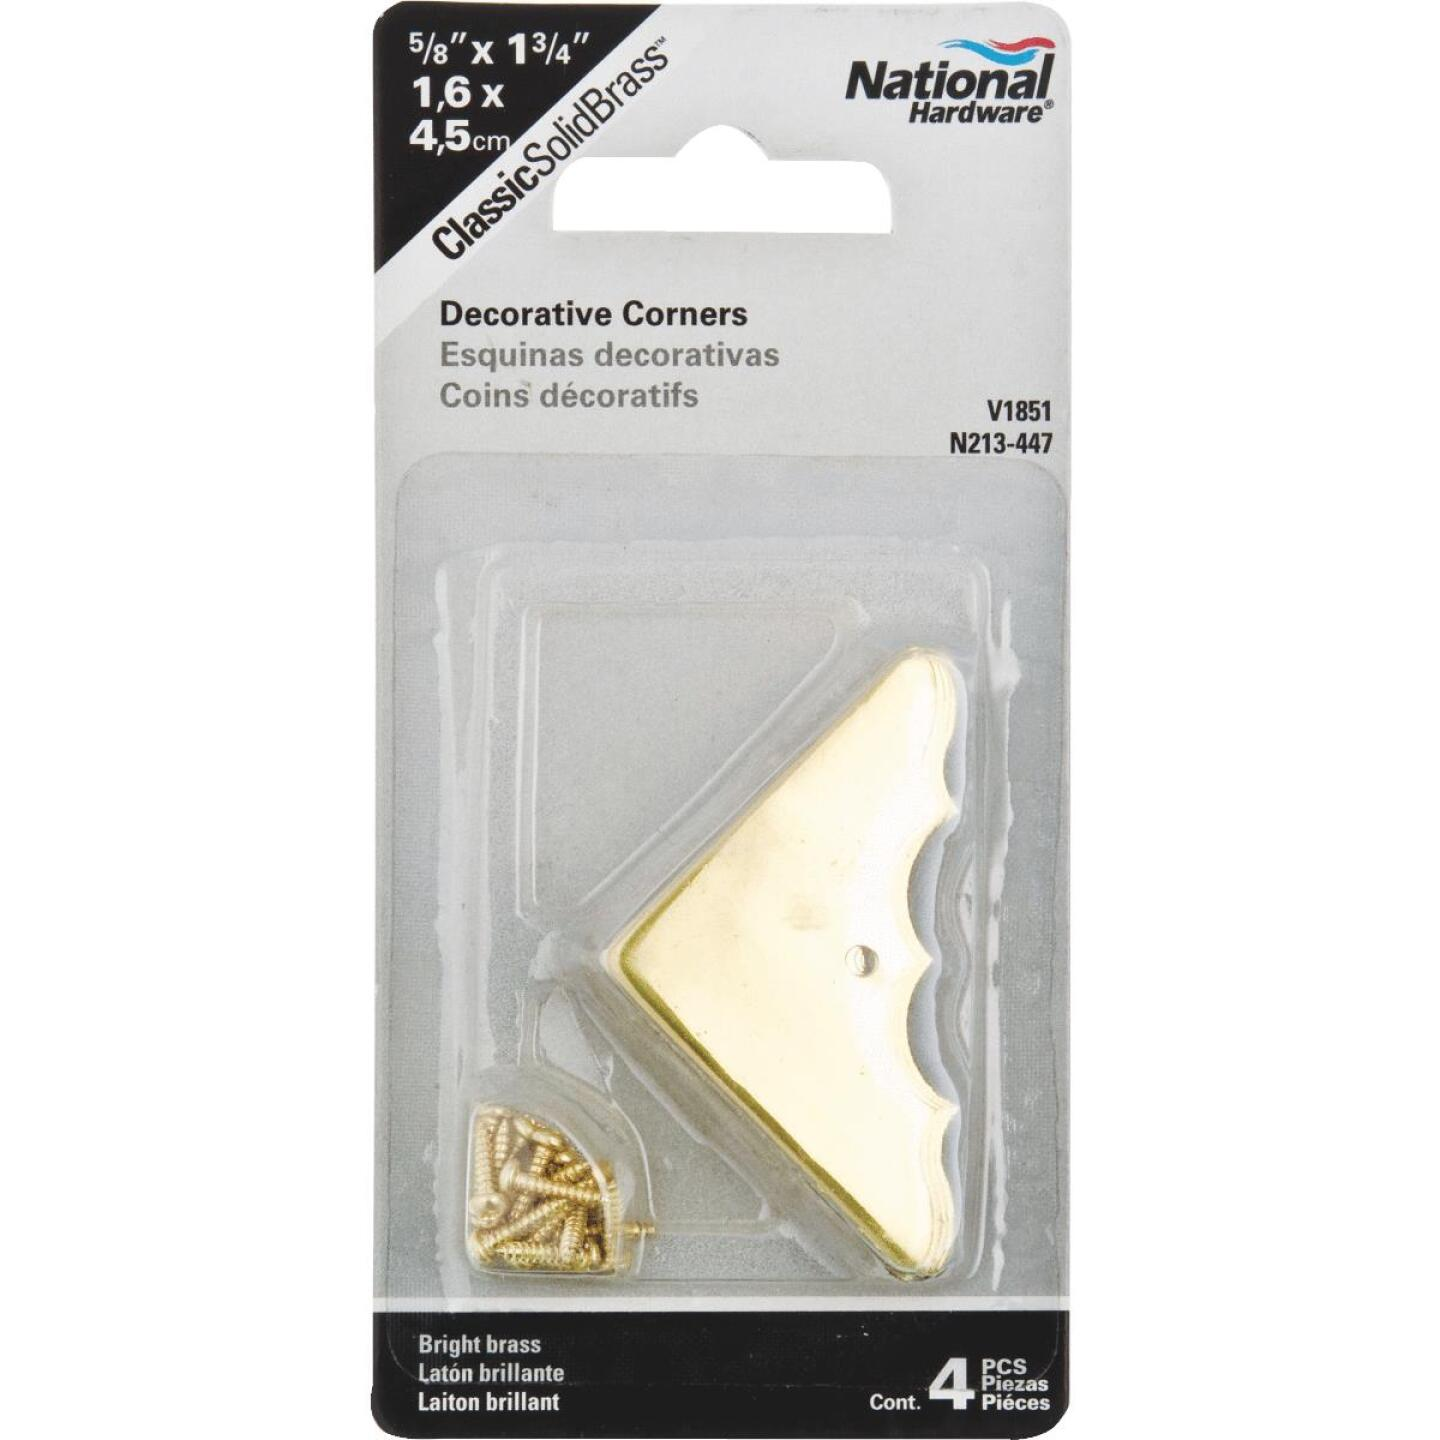 National Catalog V1854 5/8 In. x 1-3/4 In. Brass Decorative Corner Protector (4-Count) Image 2